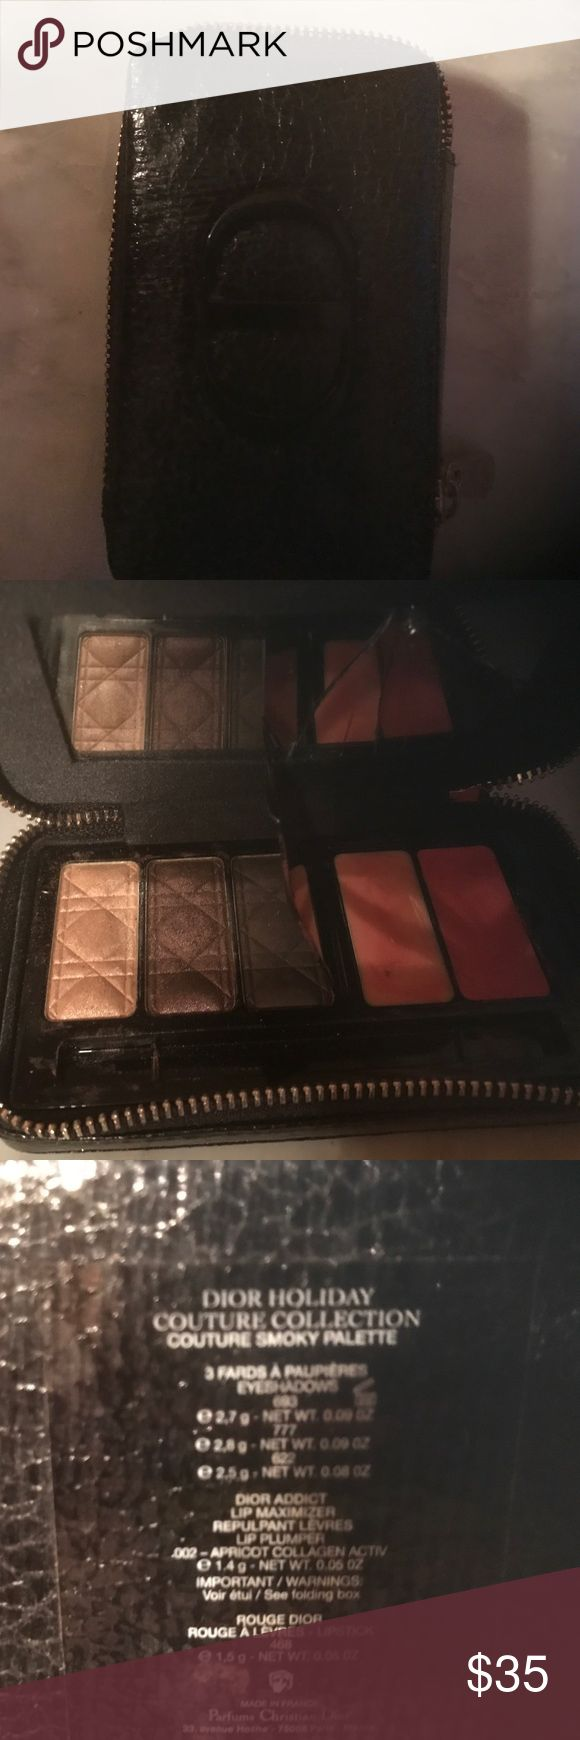 Dior Holiday Couture Palette Smoked Palette. 3 shadows and 2 lip glosses. Used maybe 3 times. Mirror cracked in my vanity. Zippers closed. Makeup Eyeshadow